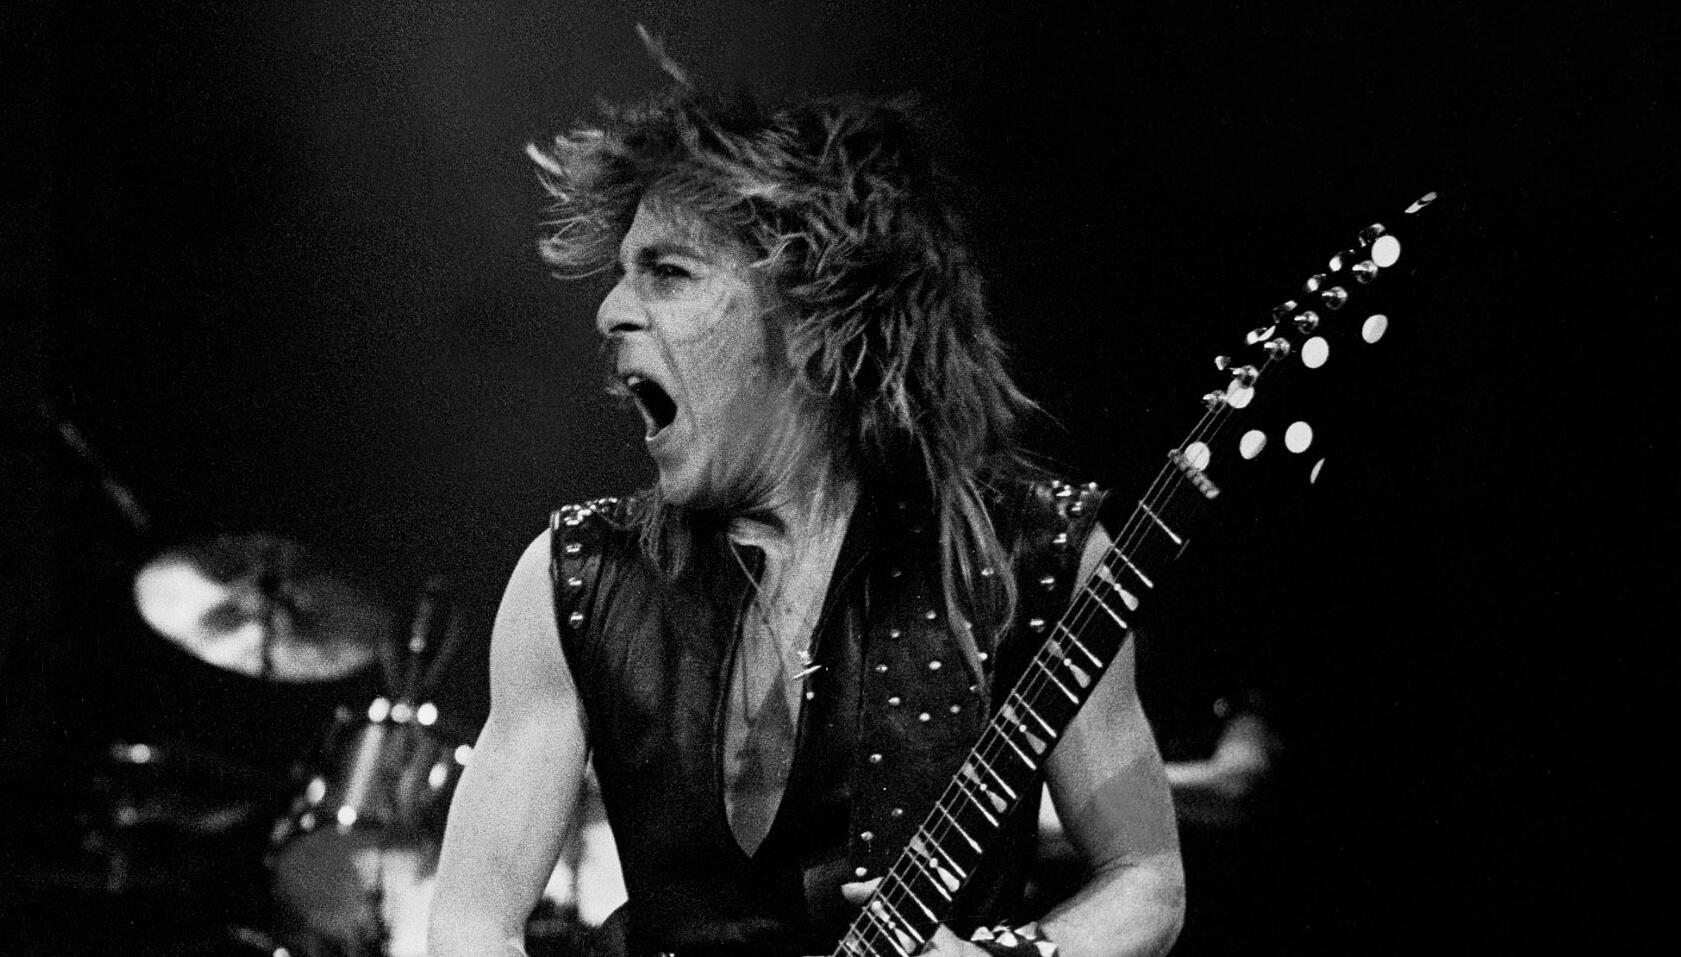 Randy Rhoads To Be Inducted Into Rock Hall Of Fame With 'Excellence Award'